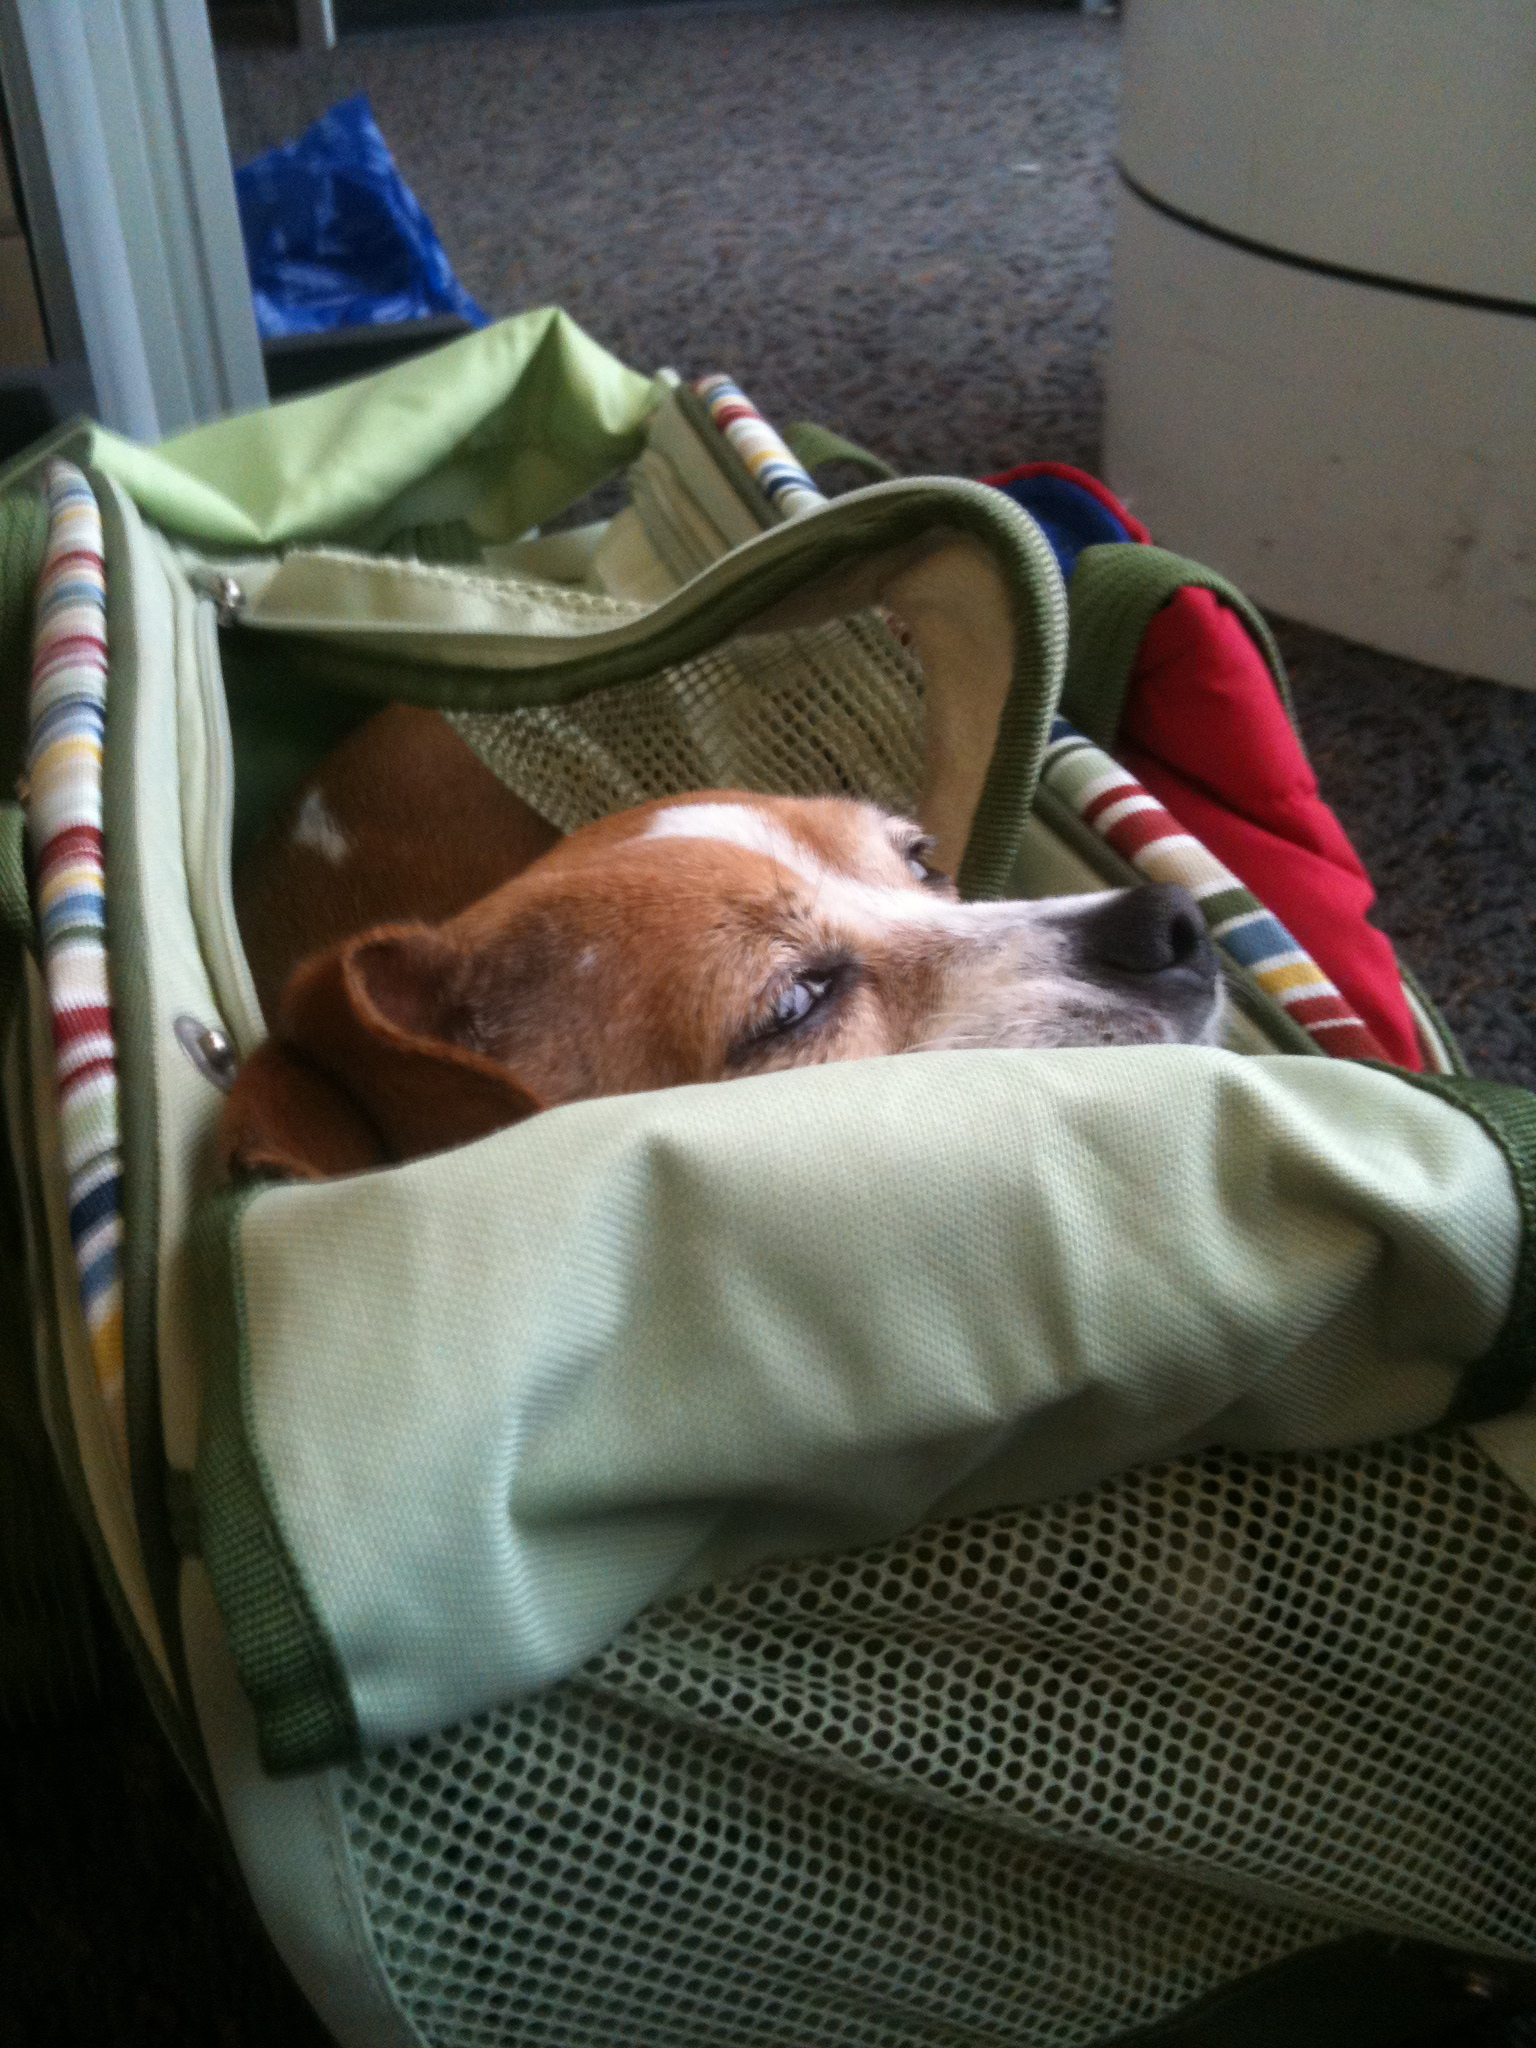 The 5 Obstacles of Pet Travel by Plane